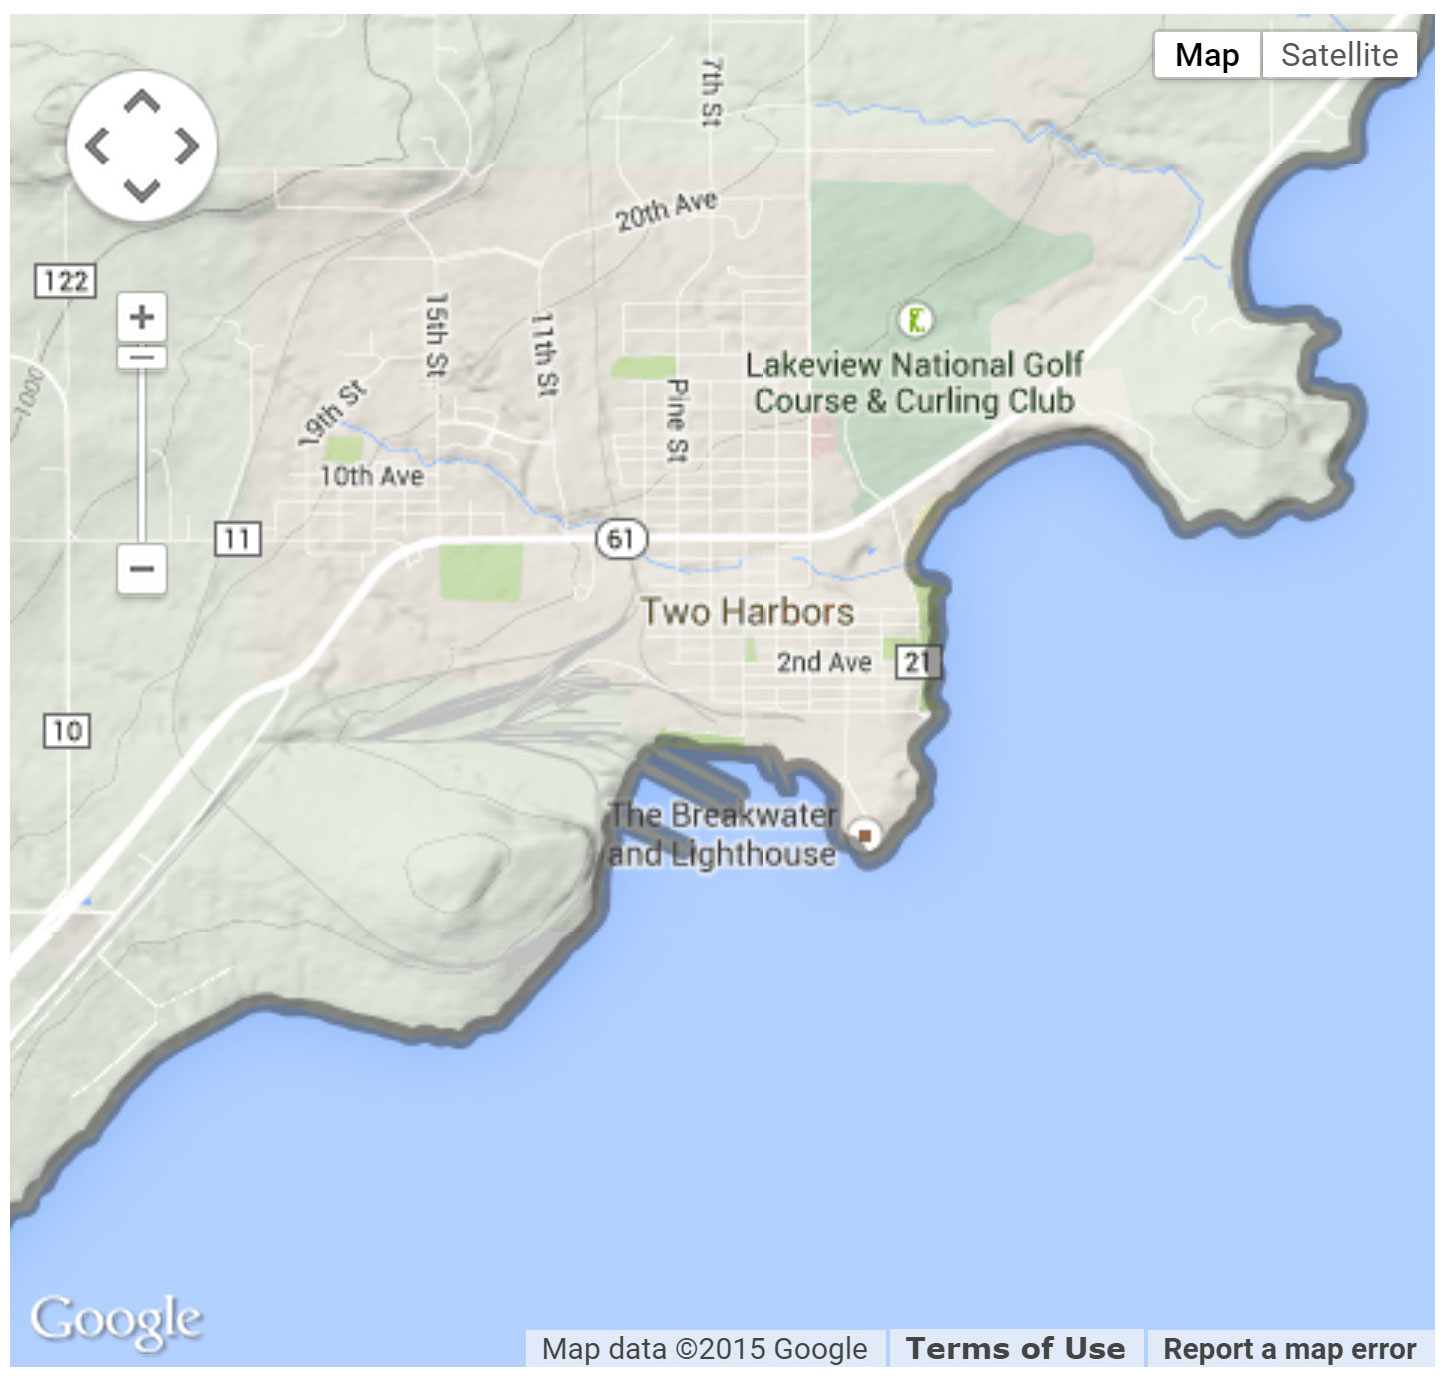 Two Harbors Protected Access location map